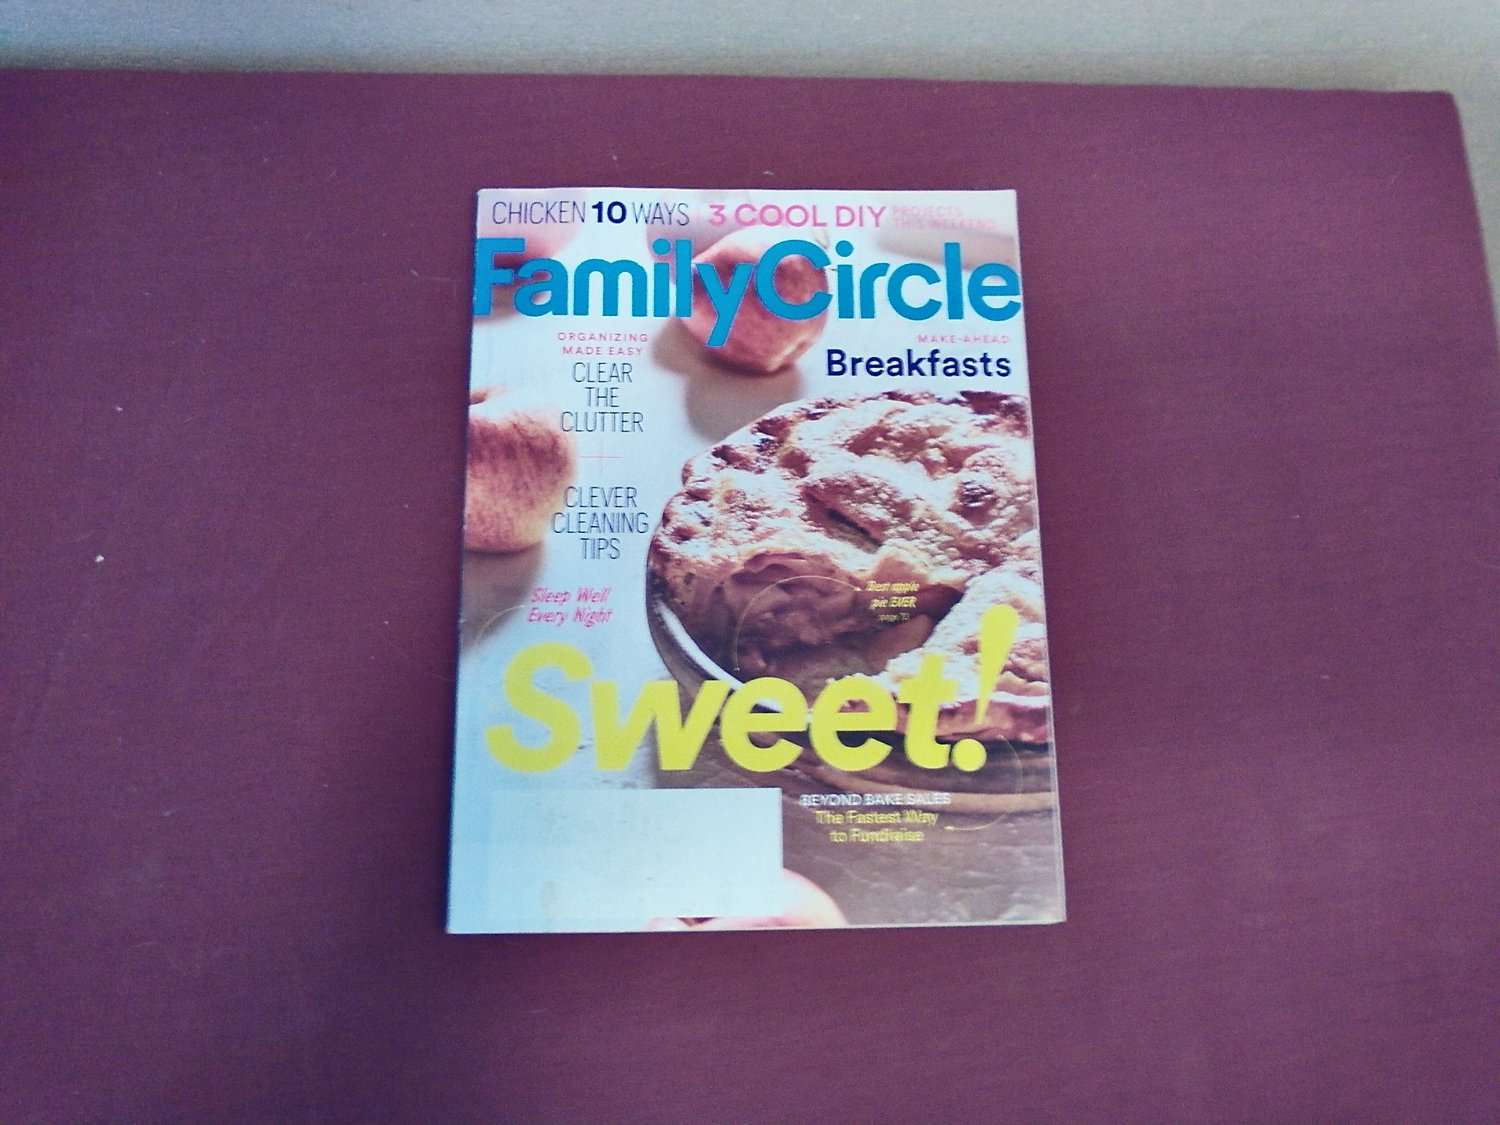 Family Circle Magazine September 2016 Volume 129 Number 9 - Make Ahead Breakfasts